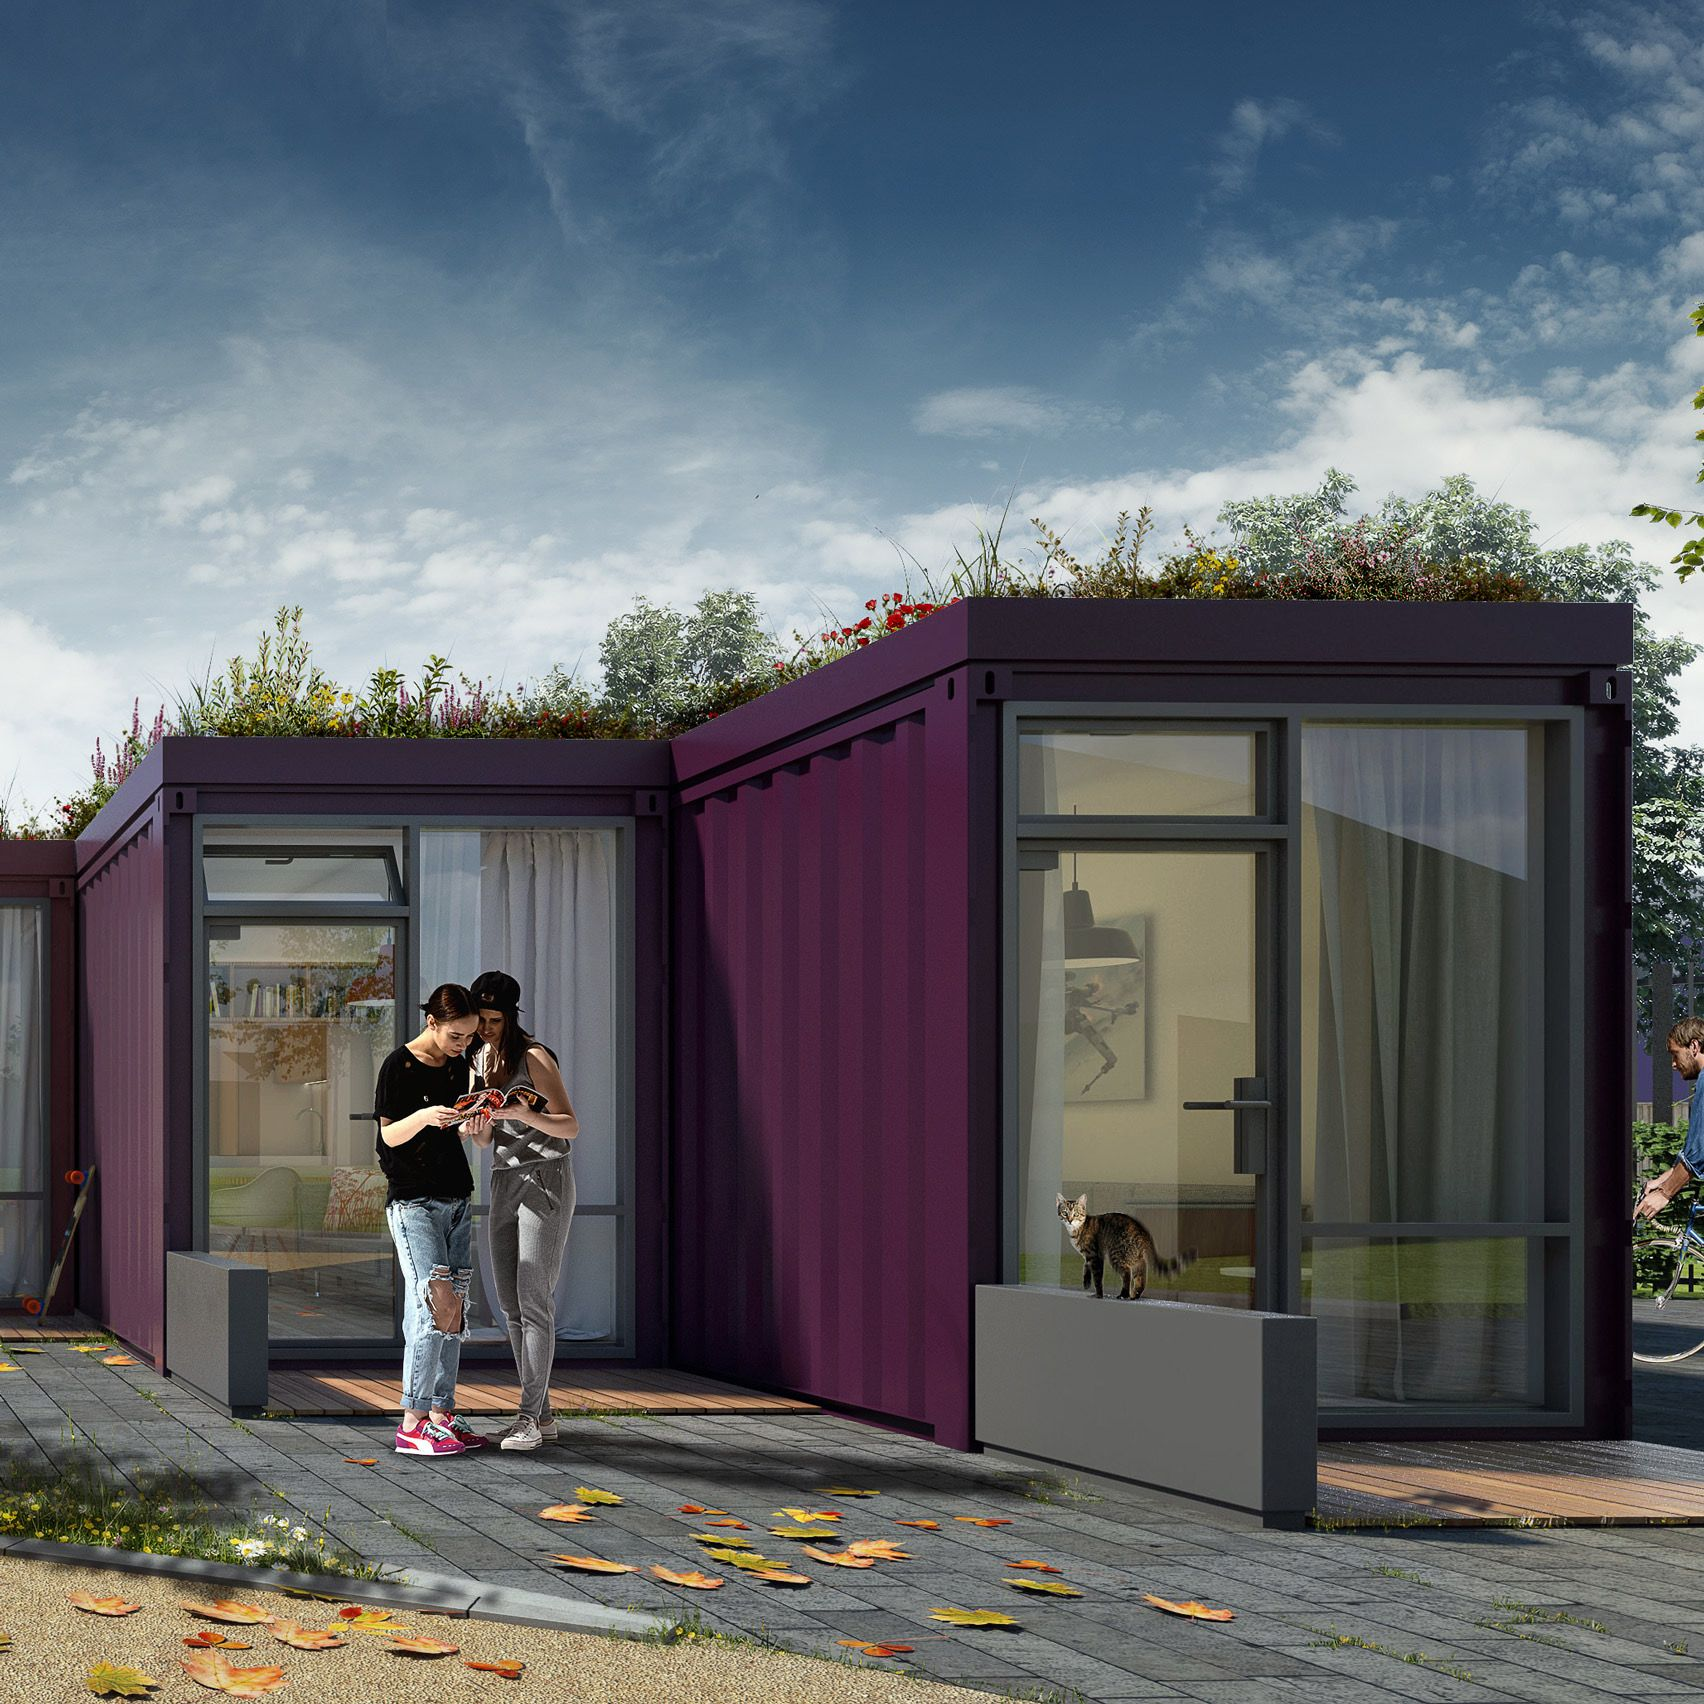 Pin by David Raethorne on Container Home Green roof